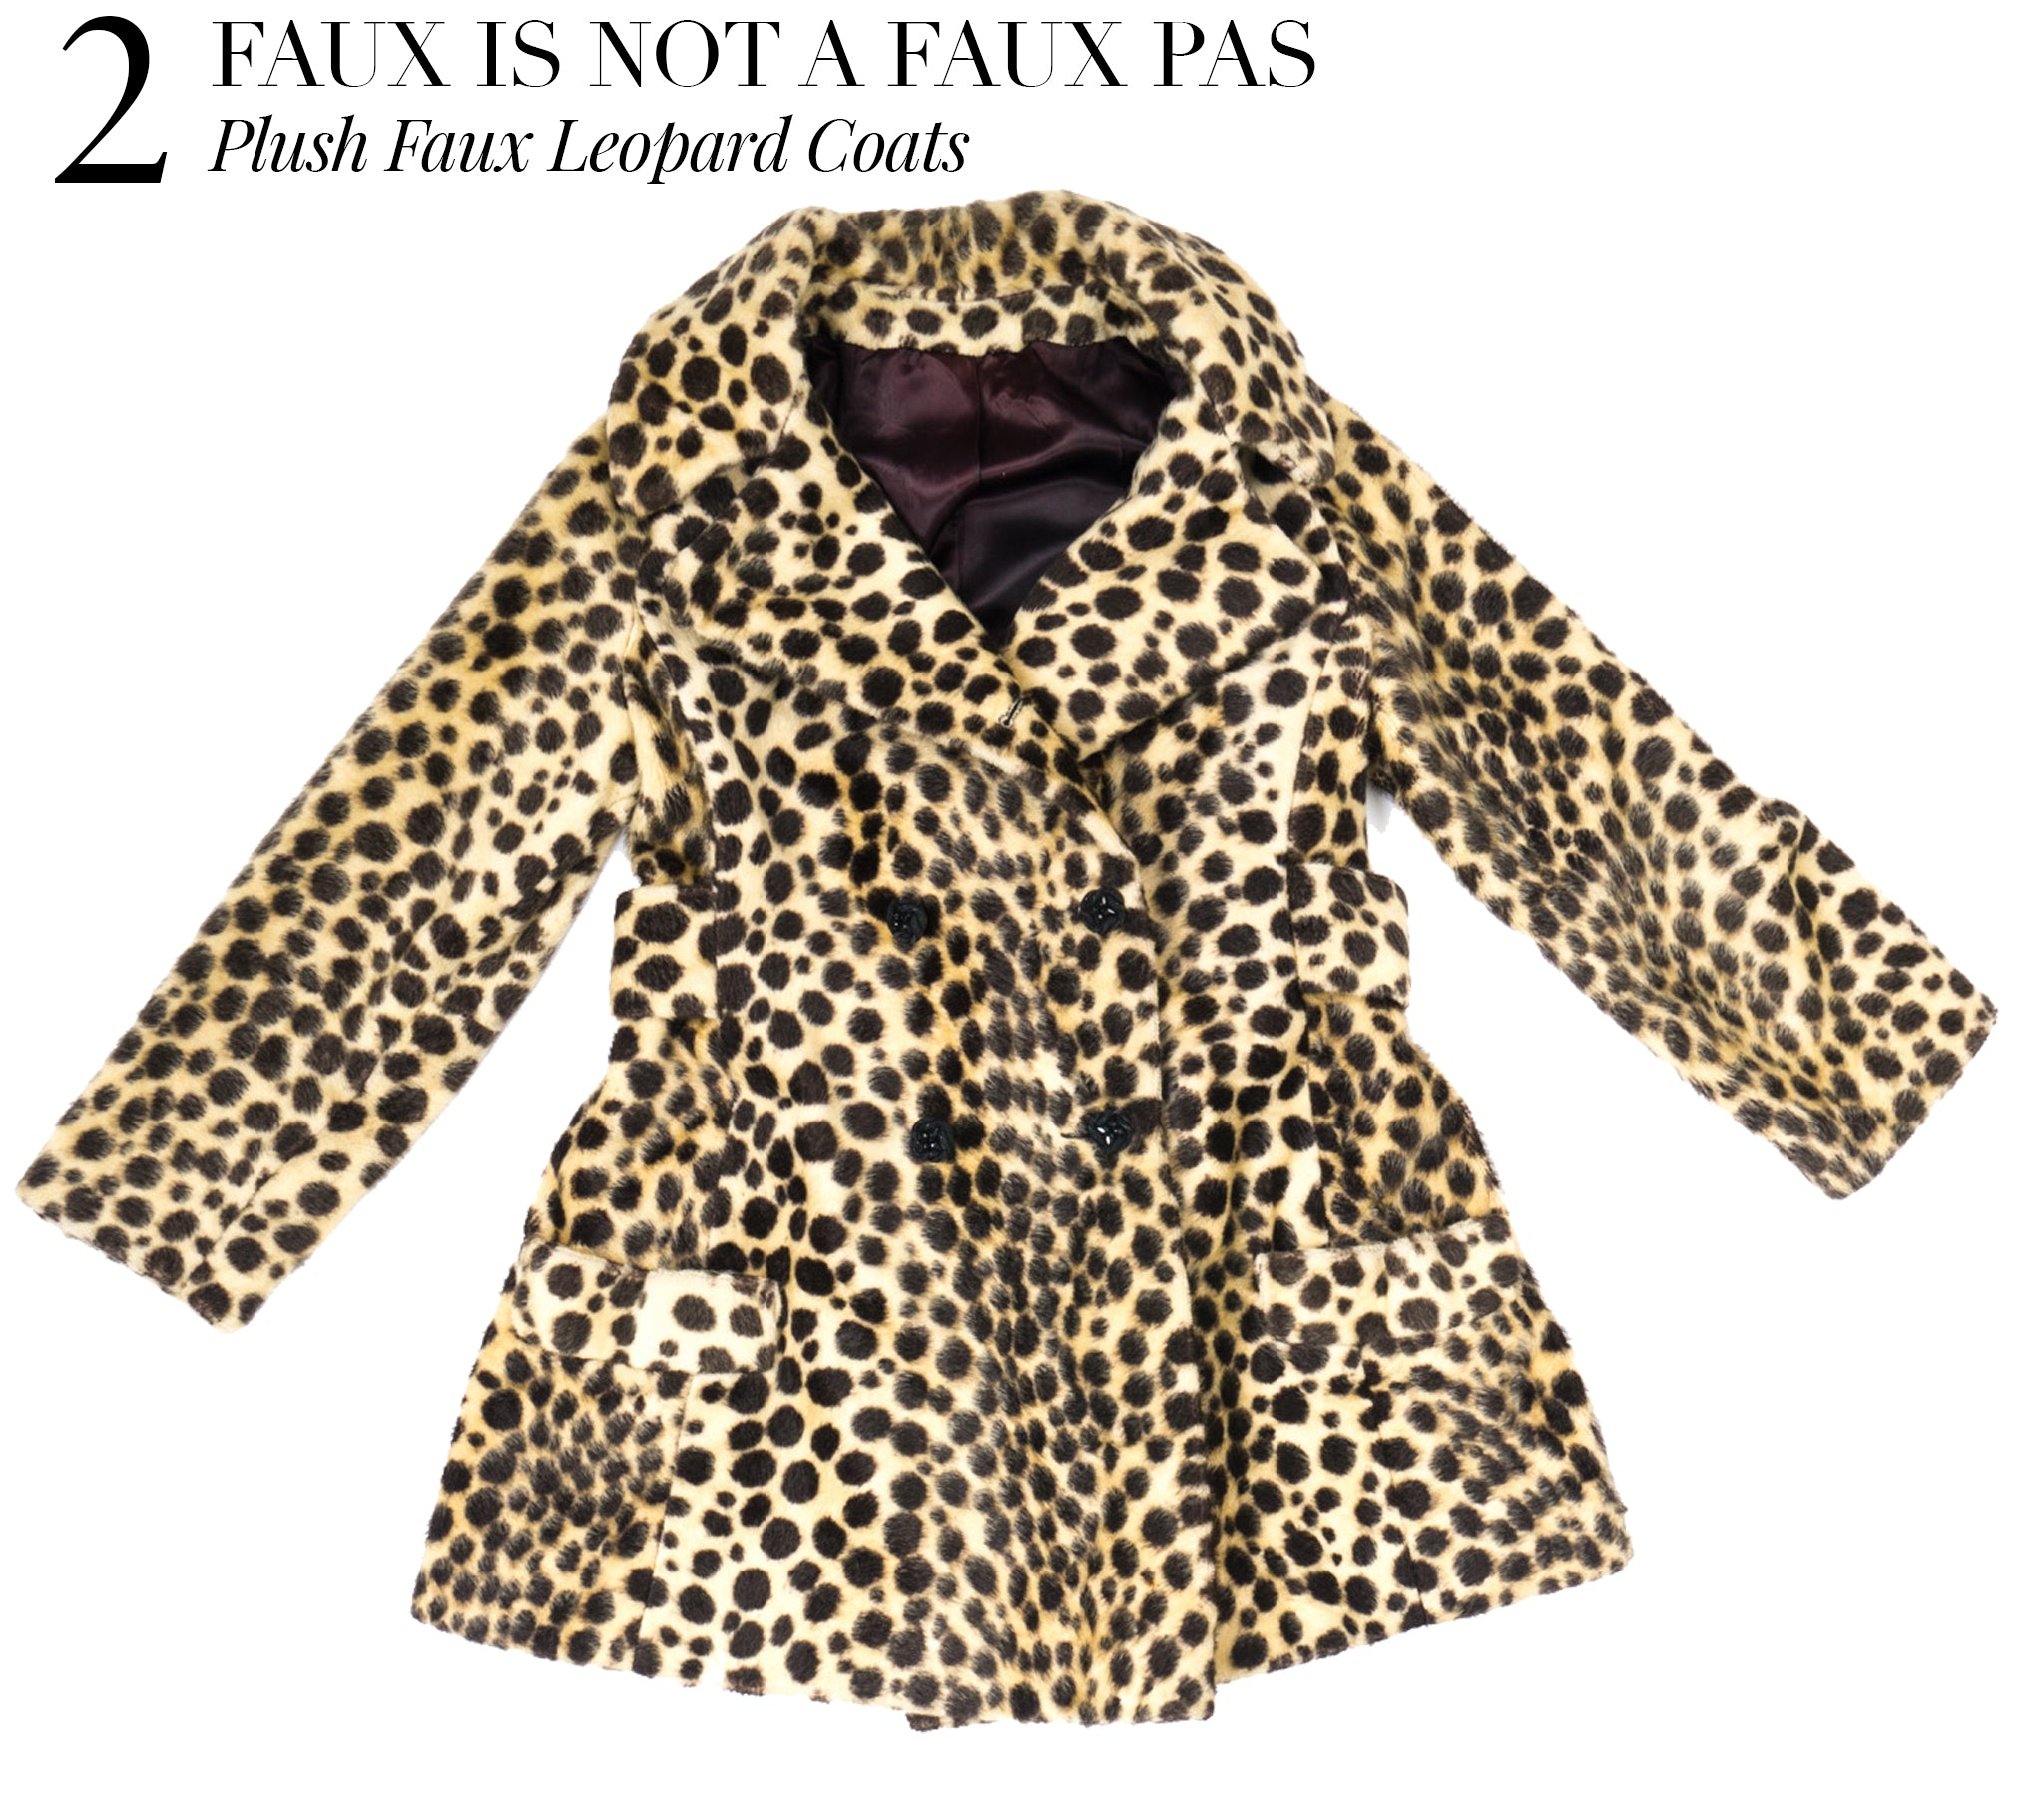 Recess Dress Code Faux Leopard Coats